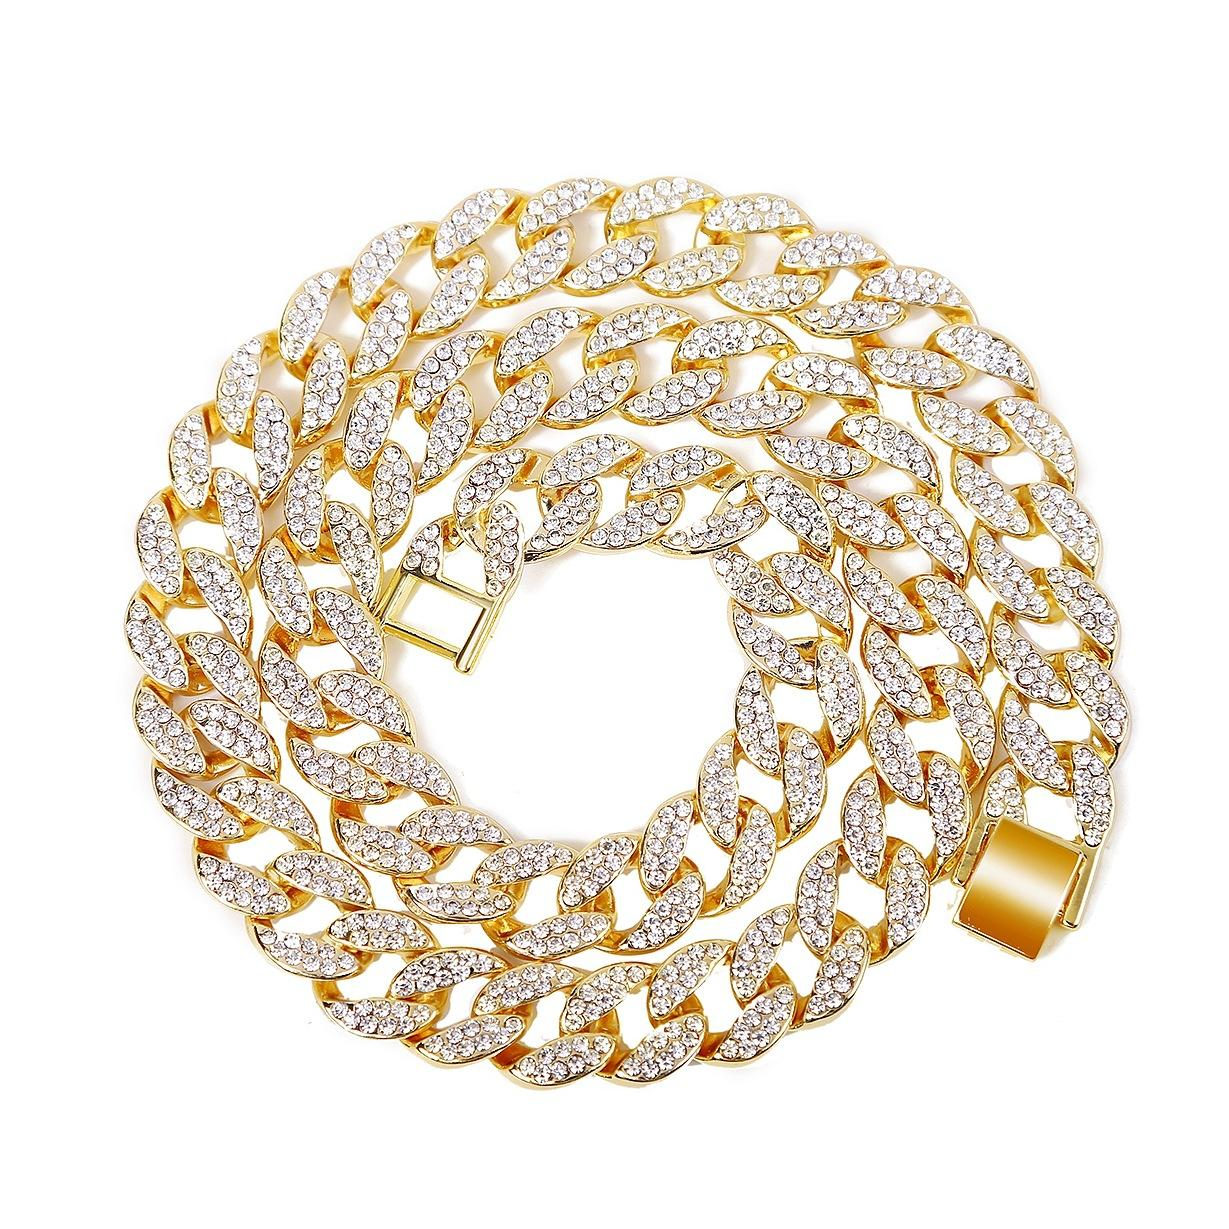 15mm mens Hip Hop necklace iced out chain bracelets gold shinning Miami Cuban Link chains braclets diamond necklaces for bling rapper women luxury jewelry large size